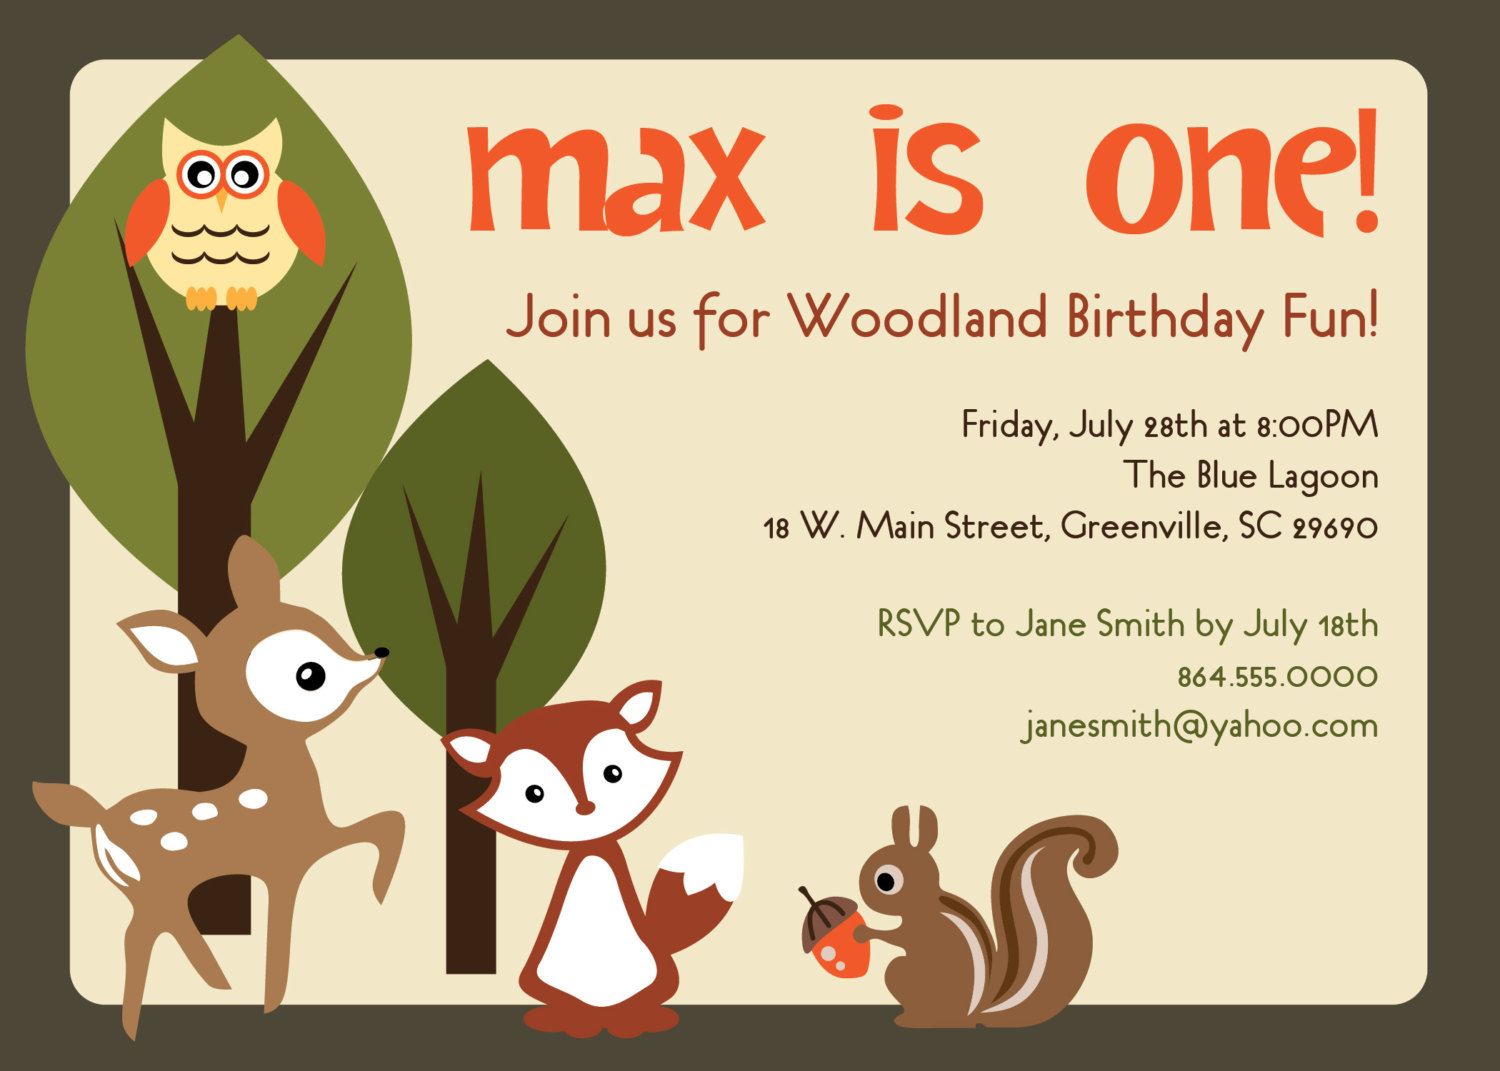 Woodland birthday invitations animals creatures friends forest woodland birthday invitations animals creatures friends forest deer owl squirrel fox stopboris Choice Image